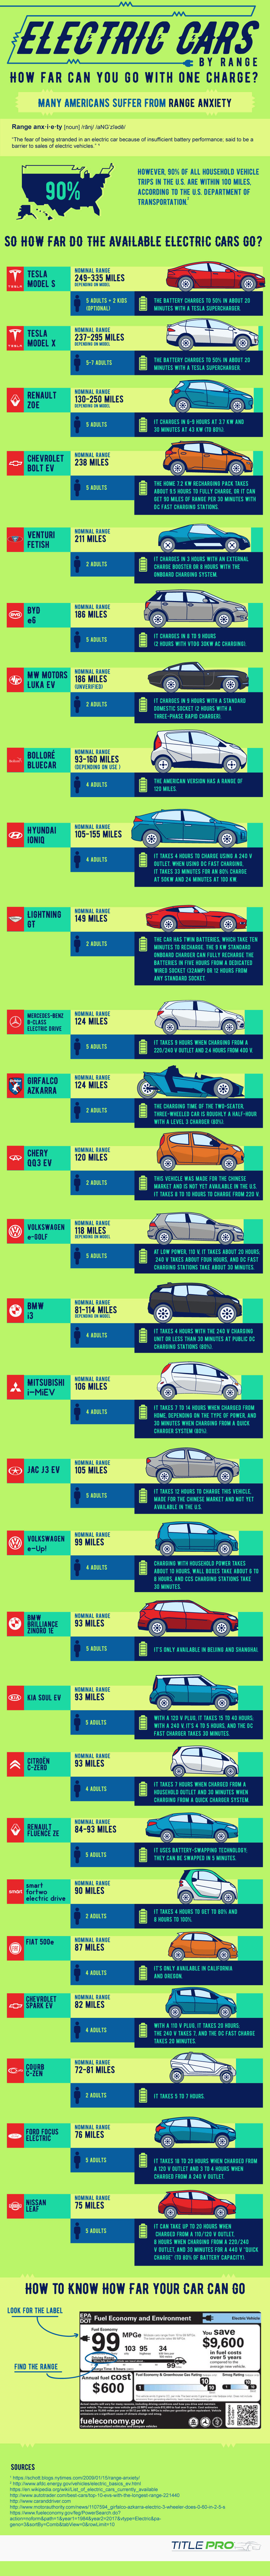 Electric Cars By Range